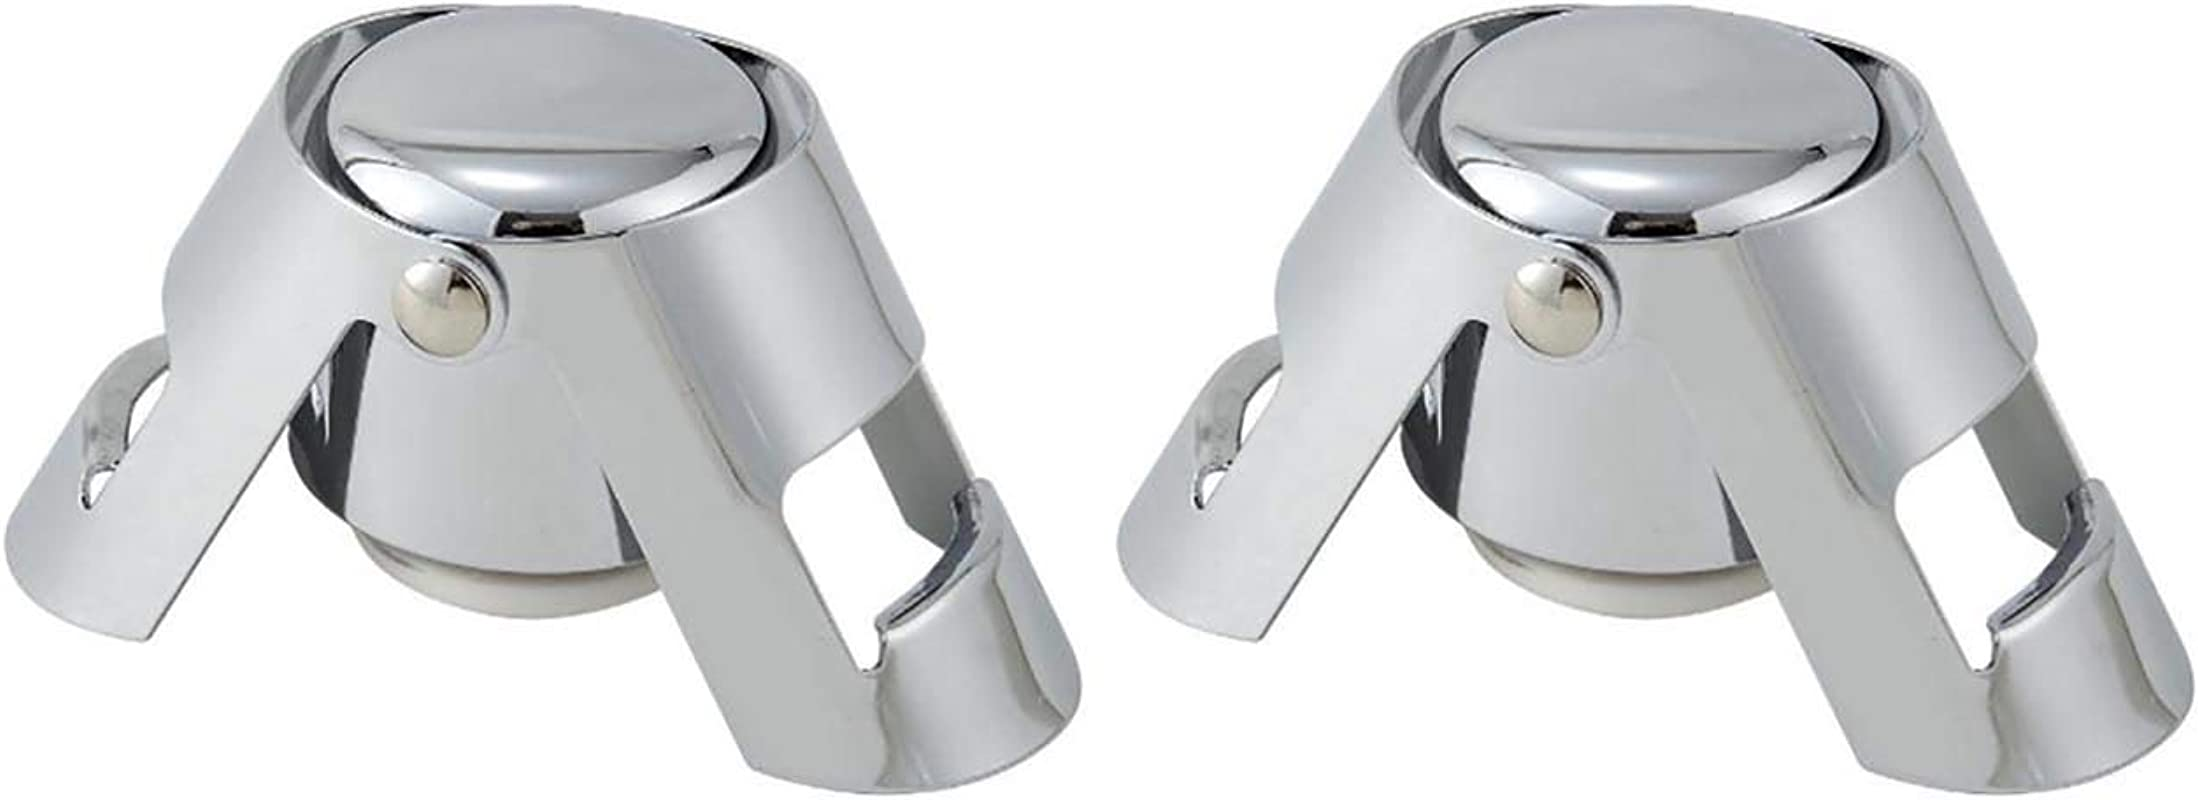 Winco Champagne Bottle Stopper Pack Of 2